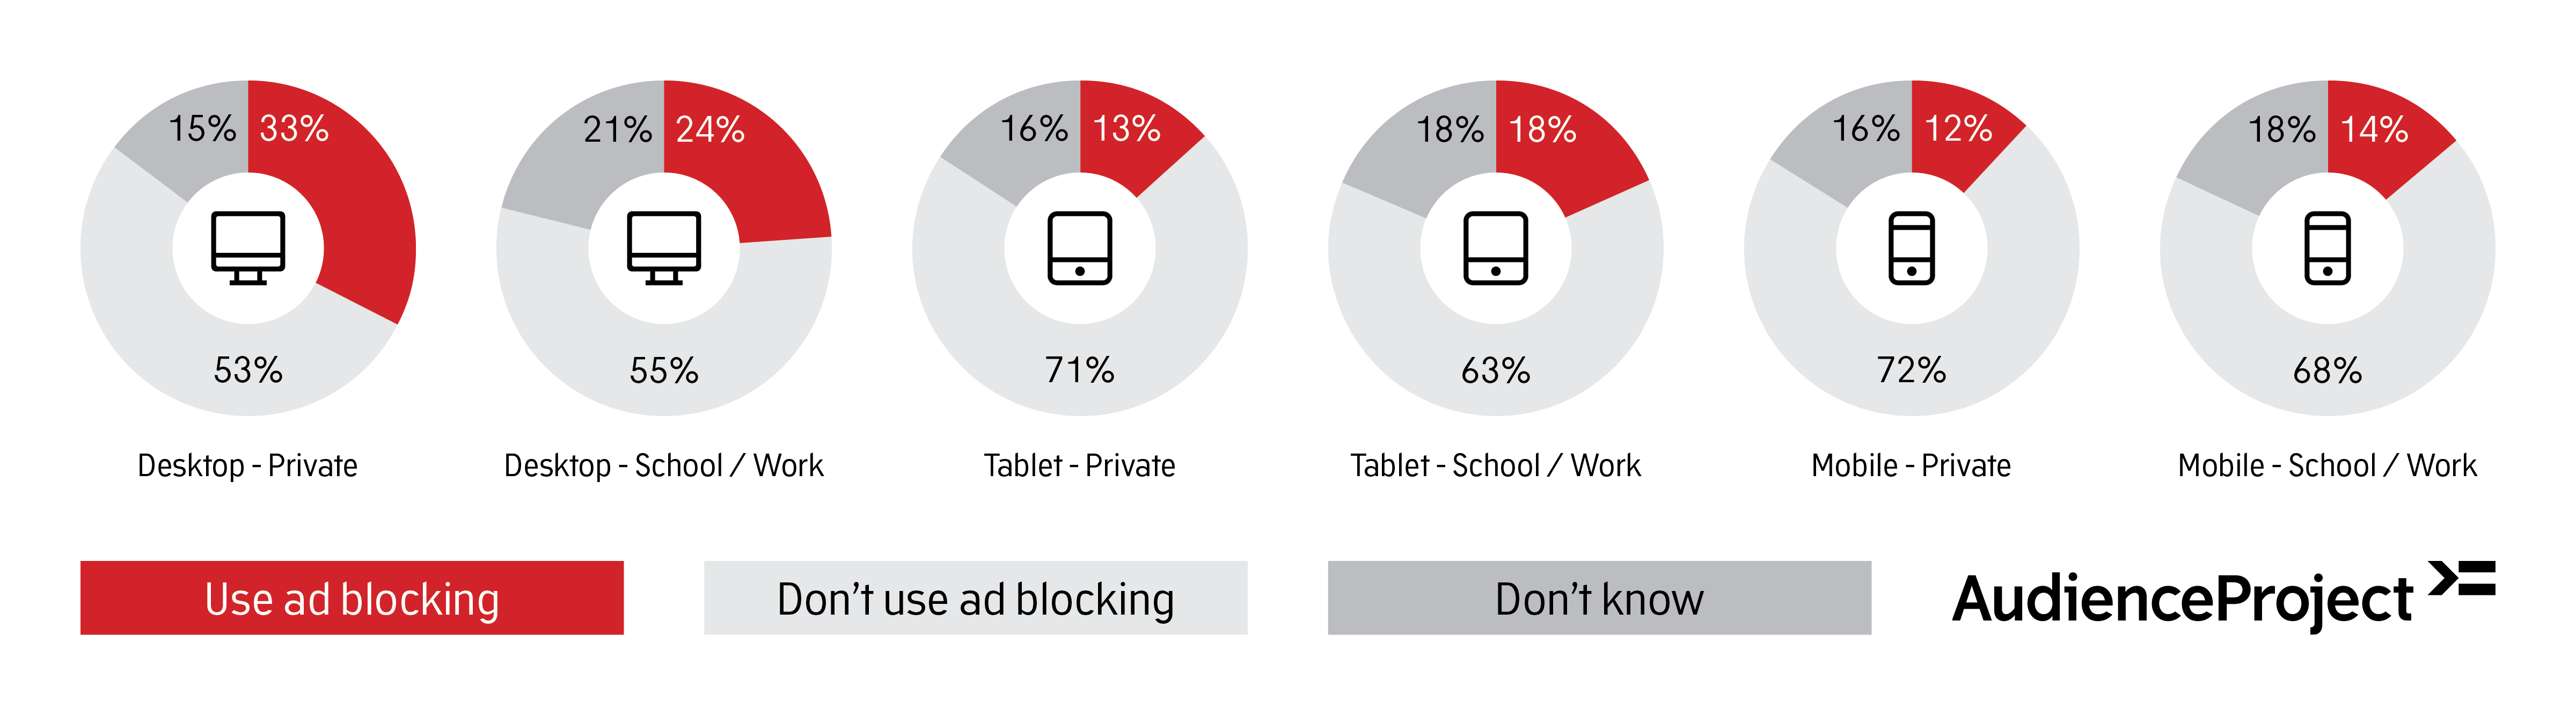 graphic_answered_ad_blocking_across_devices